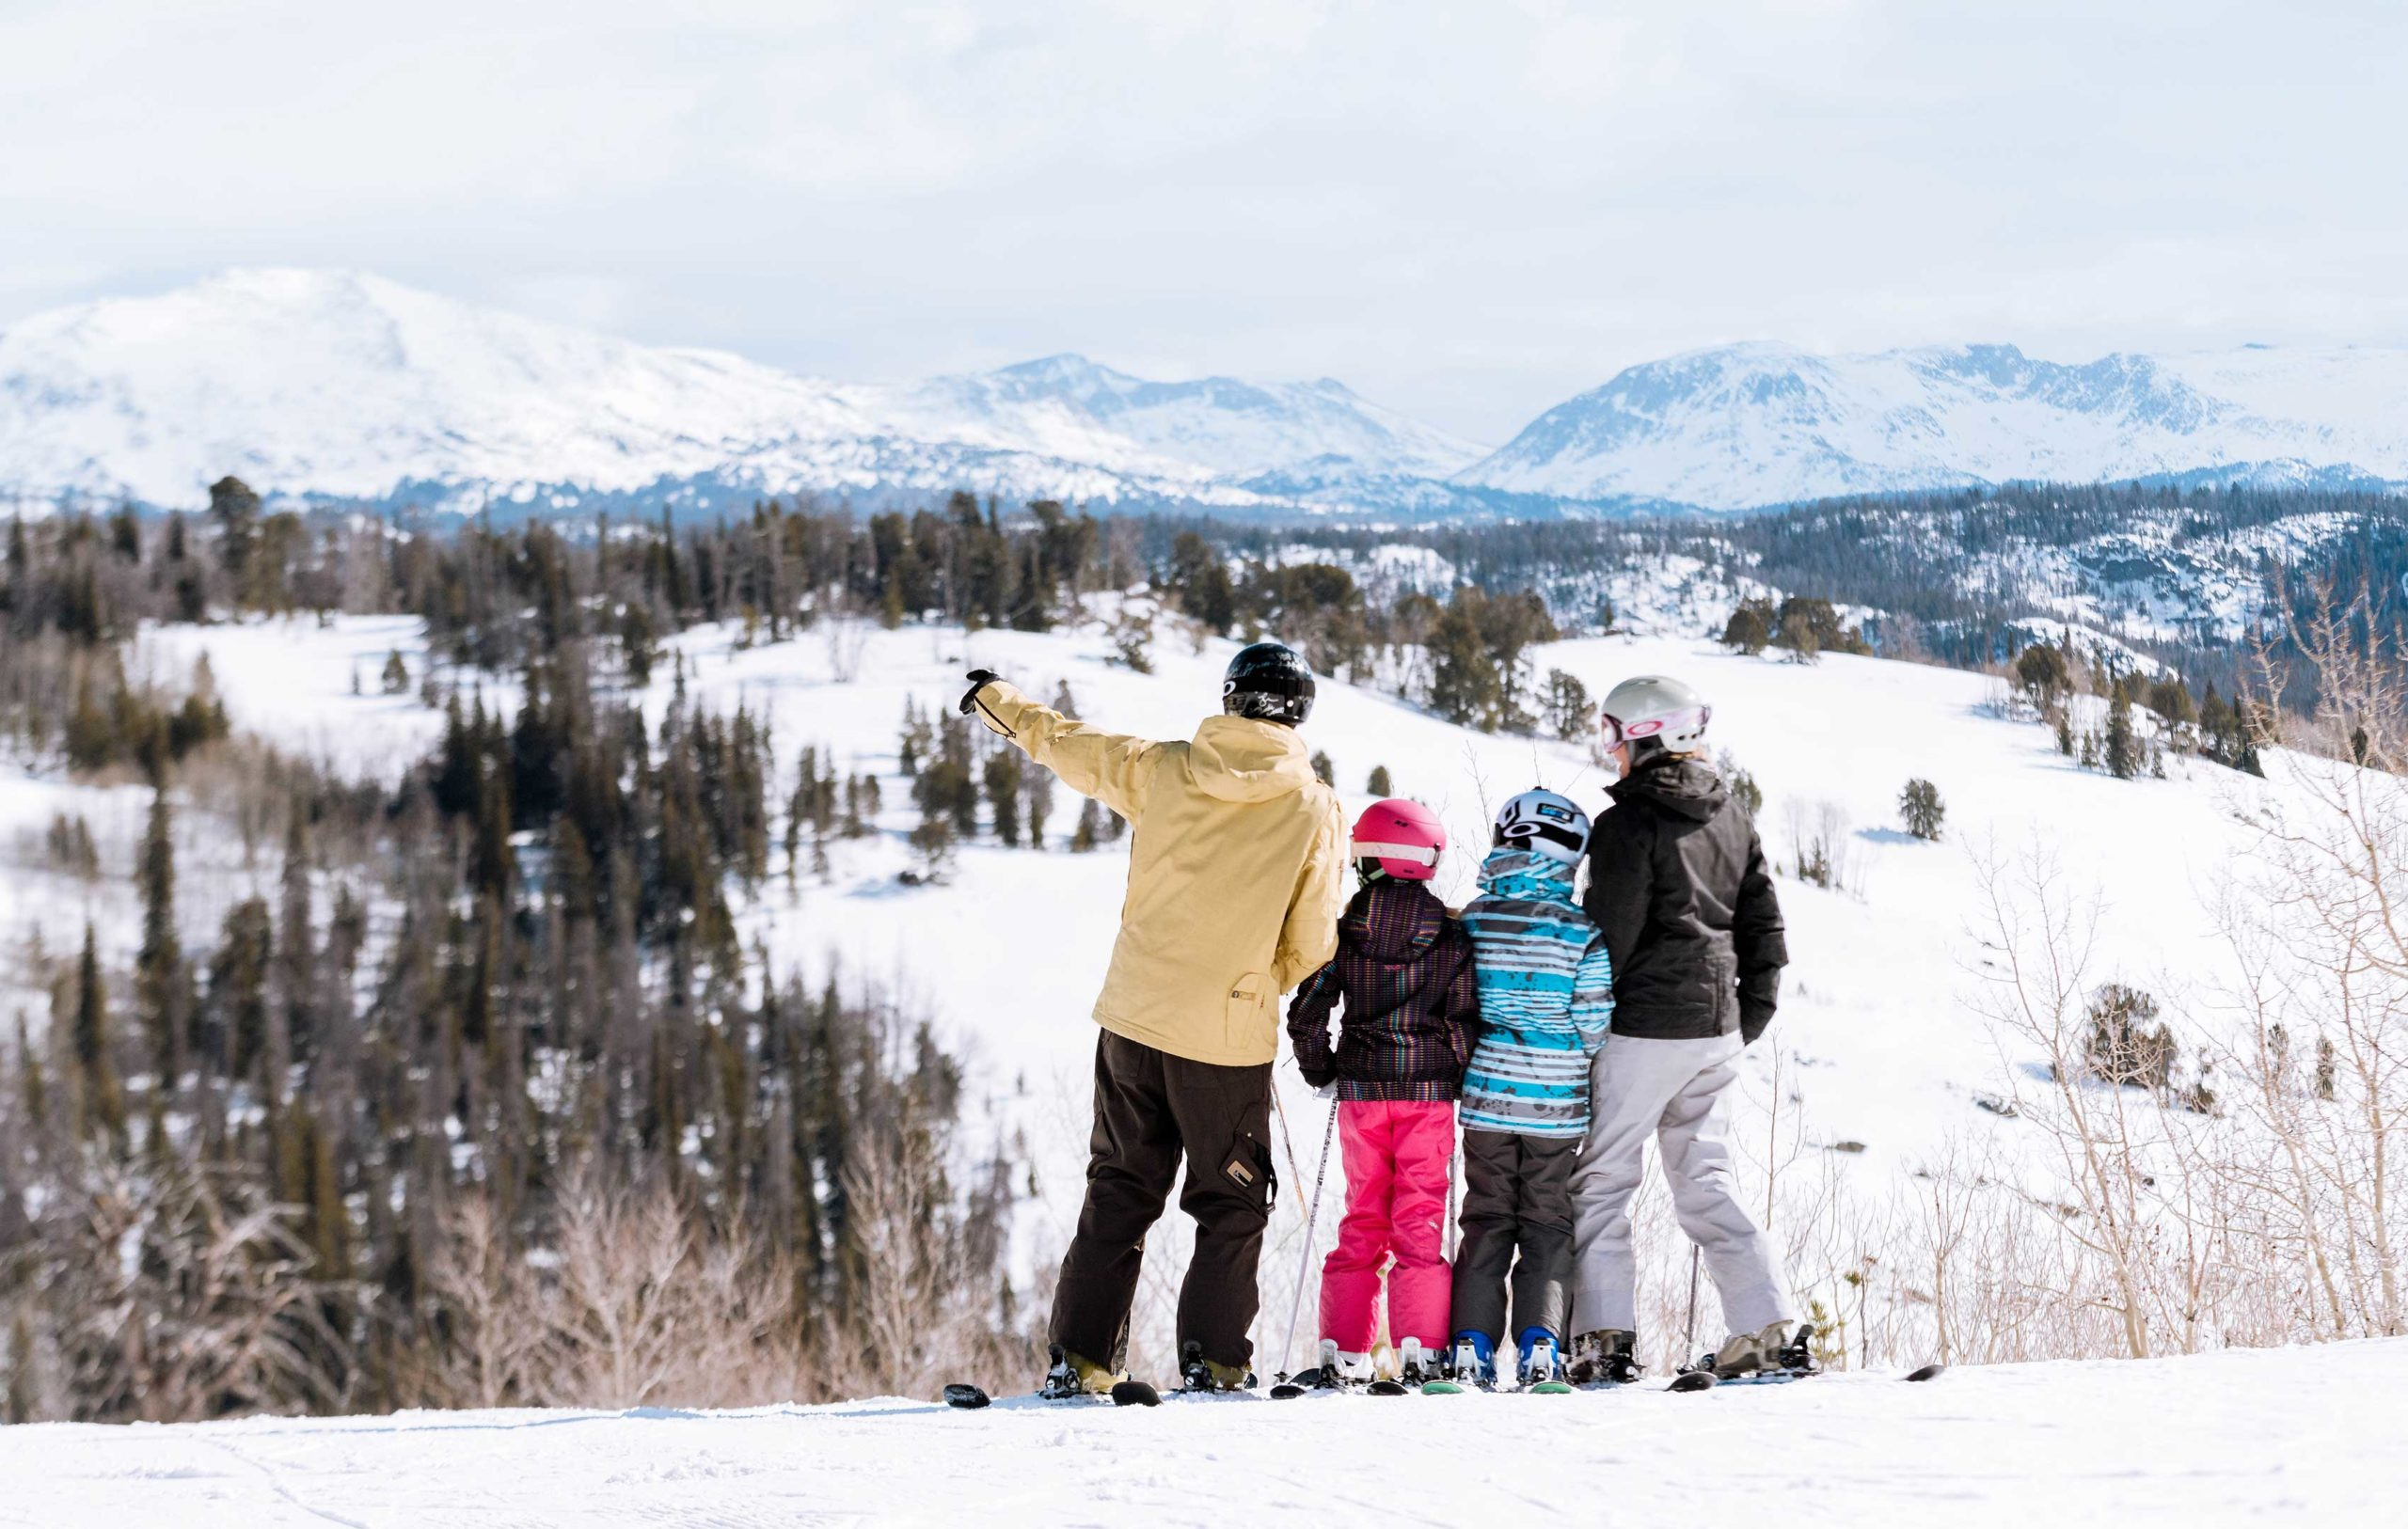 New-Thought-Visit-Pinedale-Wyoming-Ad-Photography-Family-White-Pine-Skiing-fullscreen